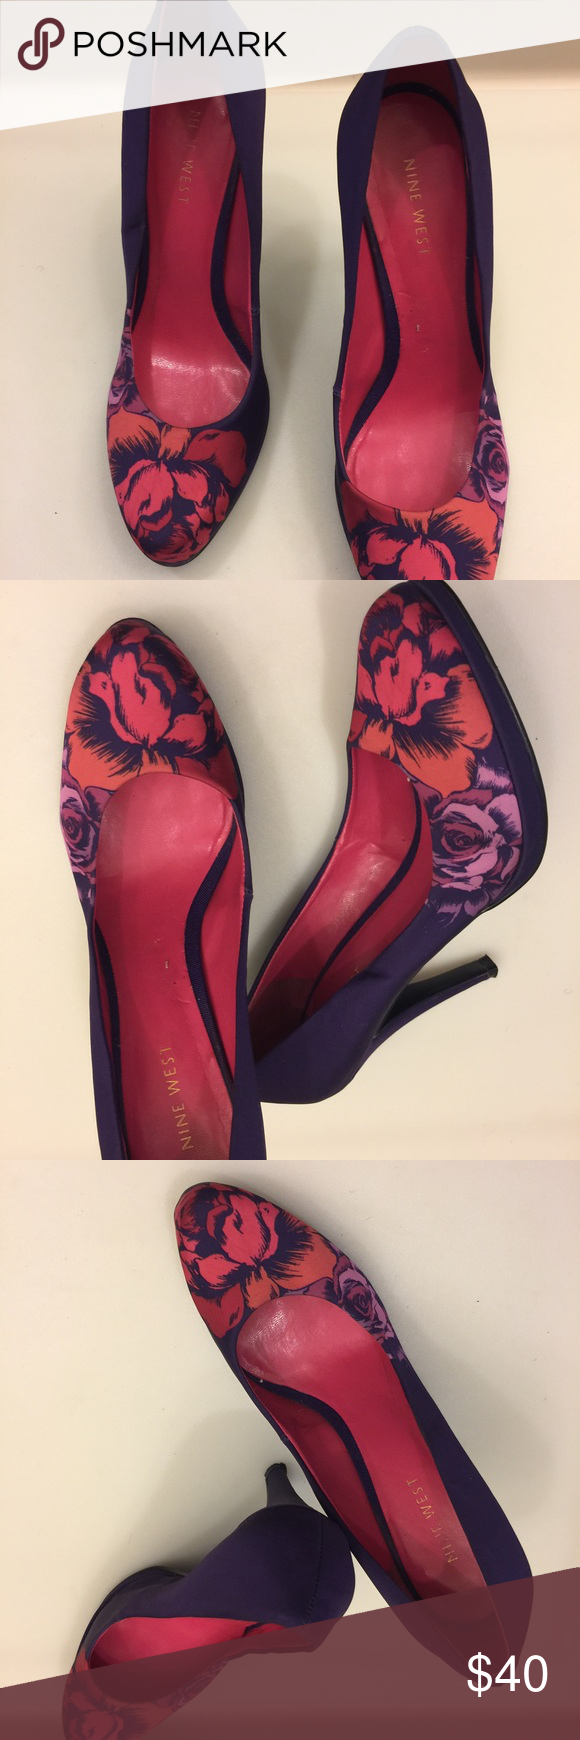 """Nine West Purple Floral Pumps Nine West fabric purple Floral Pumps in excellent preowned condition. These pumps show sign of wear, please take a look👀 at the pictures before purchasing. Size::6.5  Color:Purple/pink/orange and Lilac  Heel:4"""" Nine West Shoes Heels"""